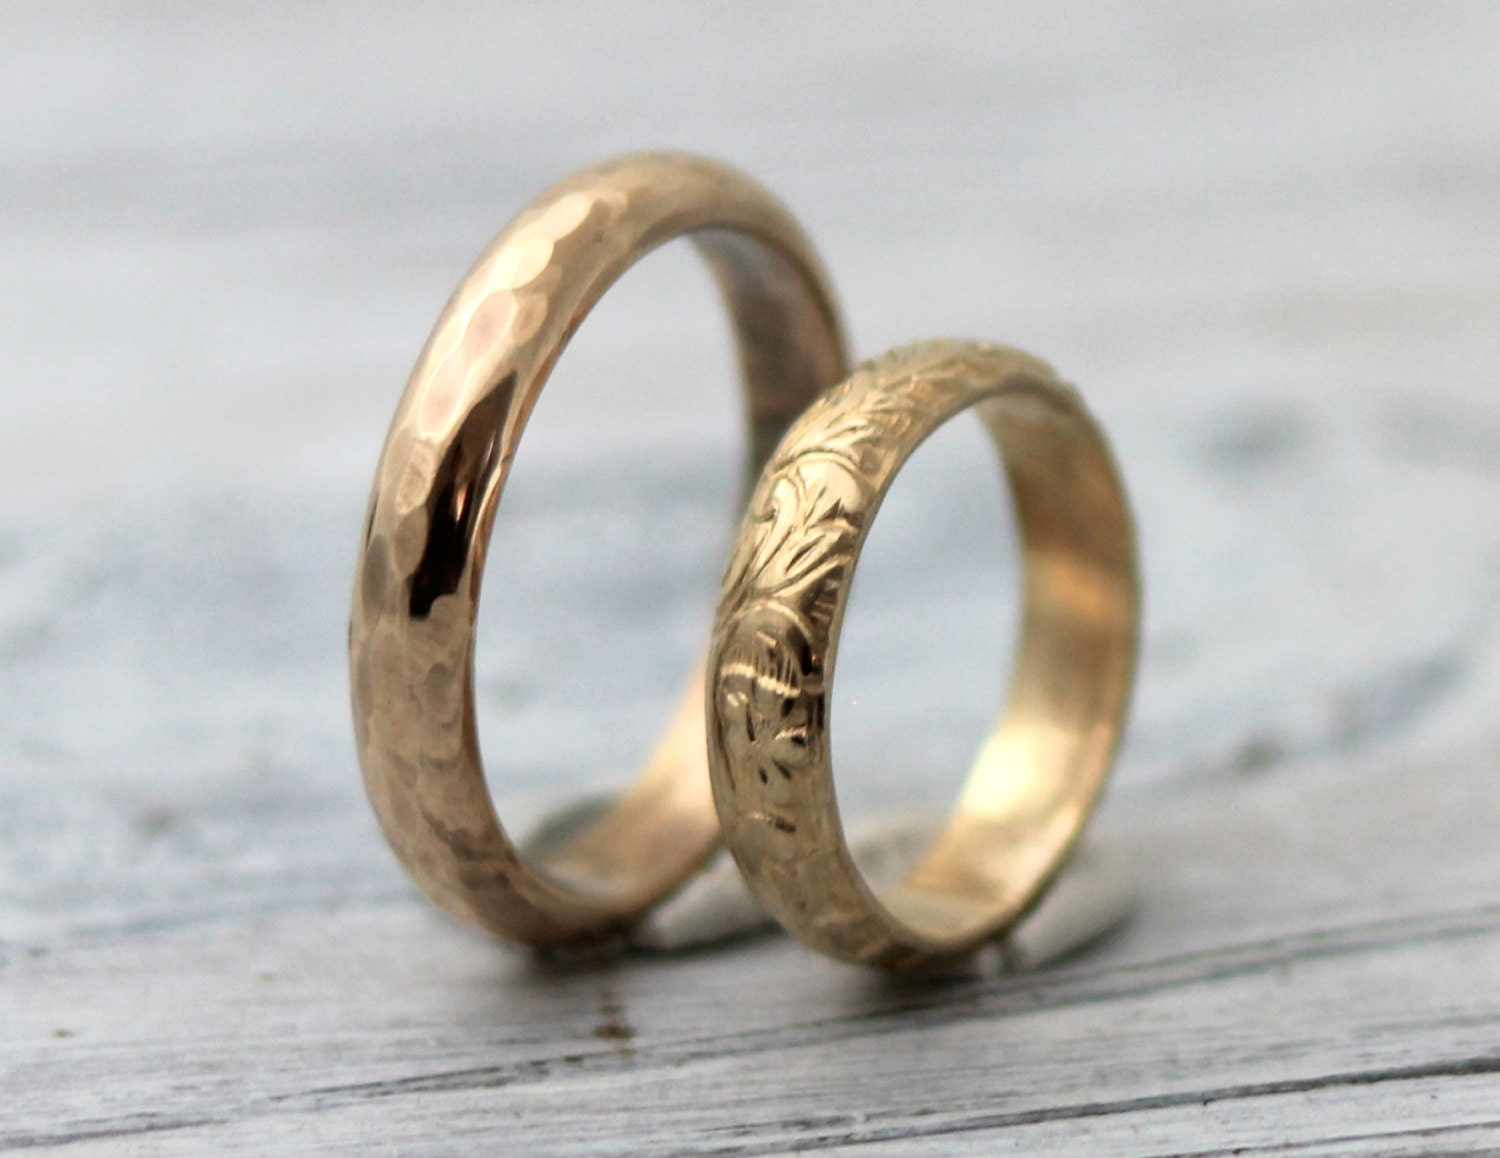 His and Hers Couples RingsHis and Hers wedding Rings Modern